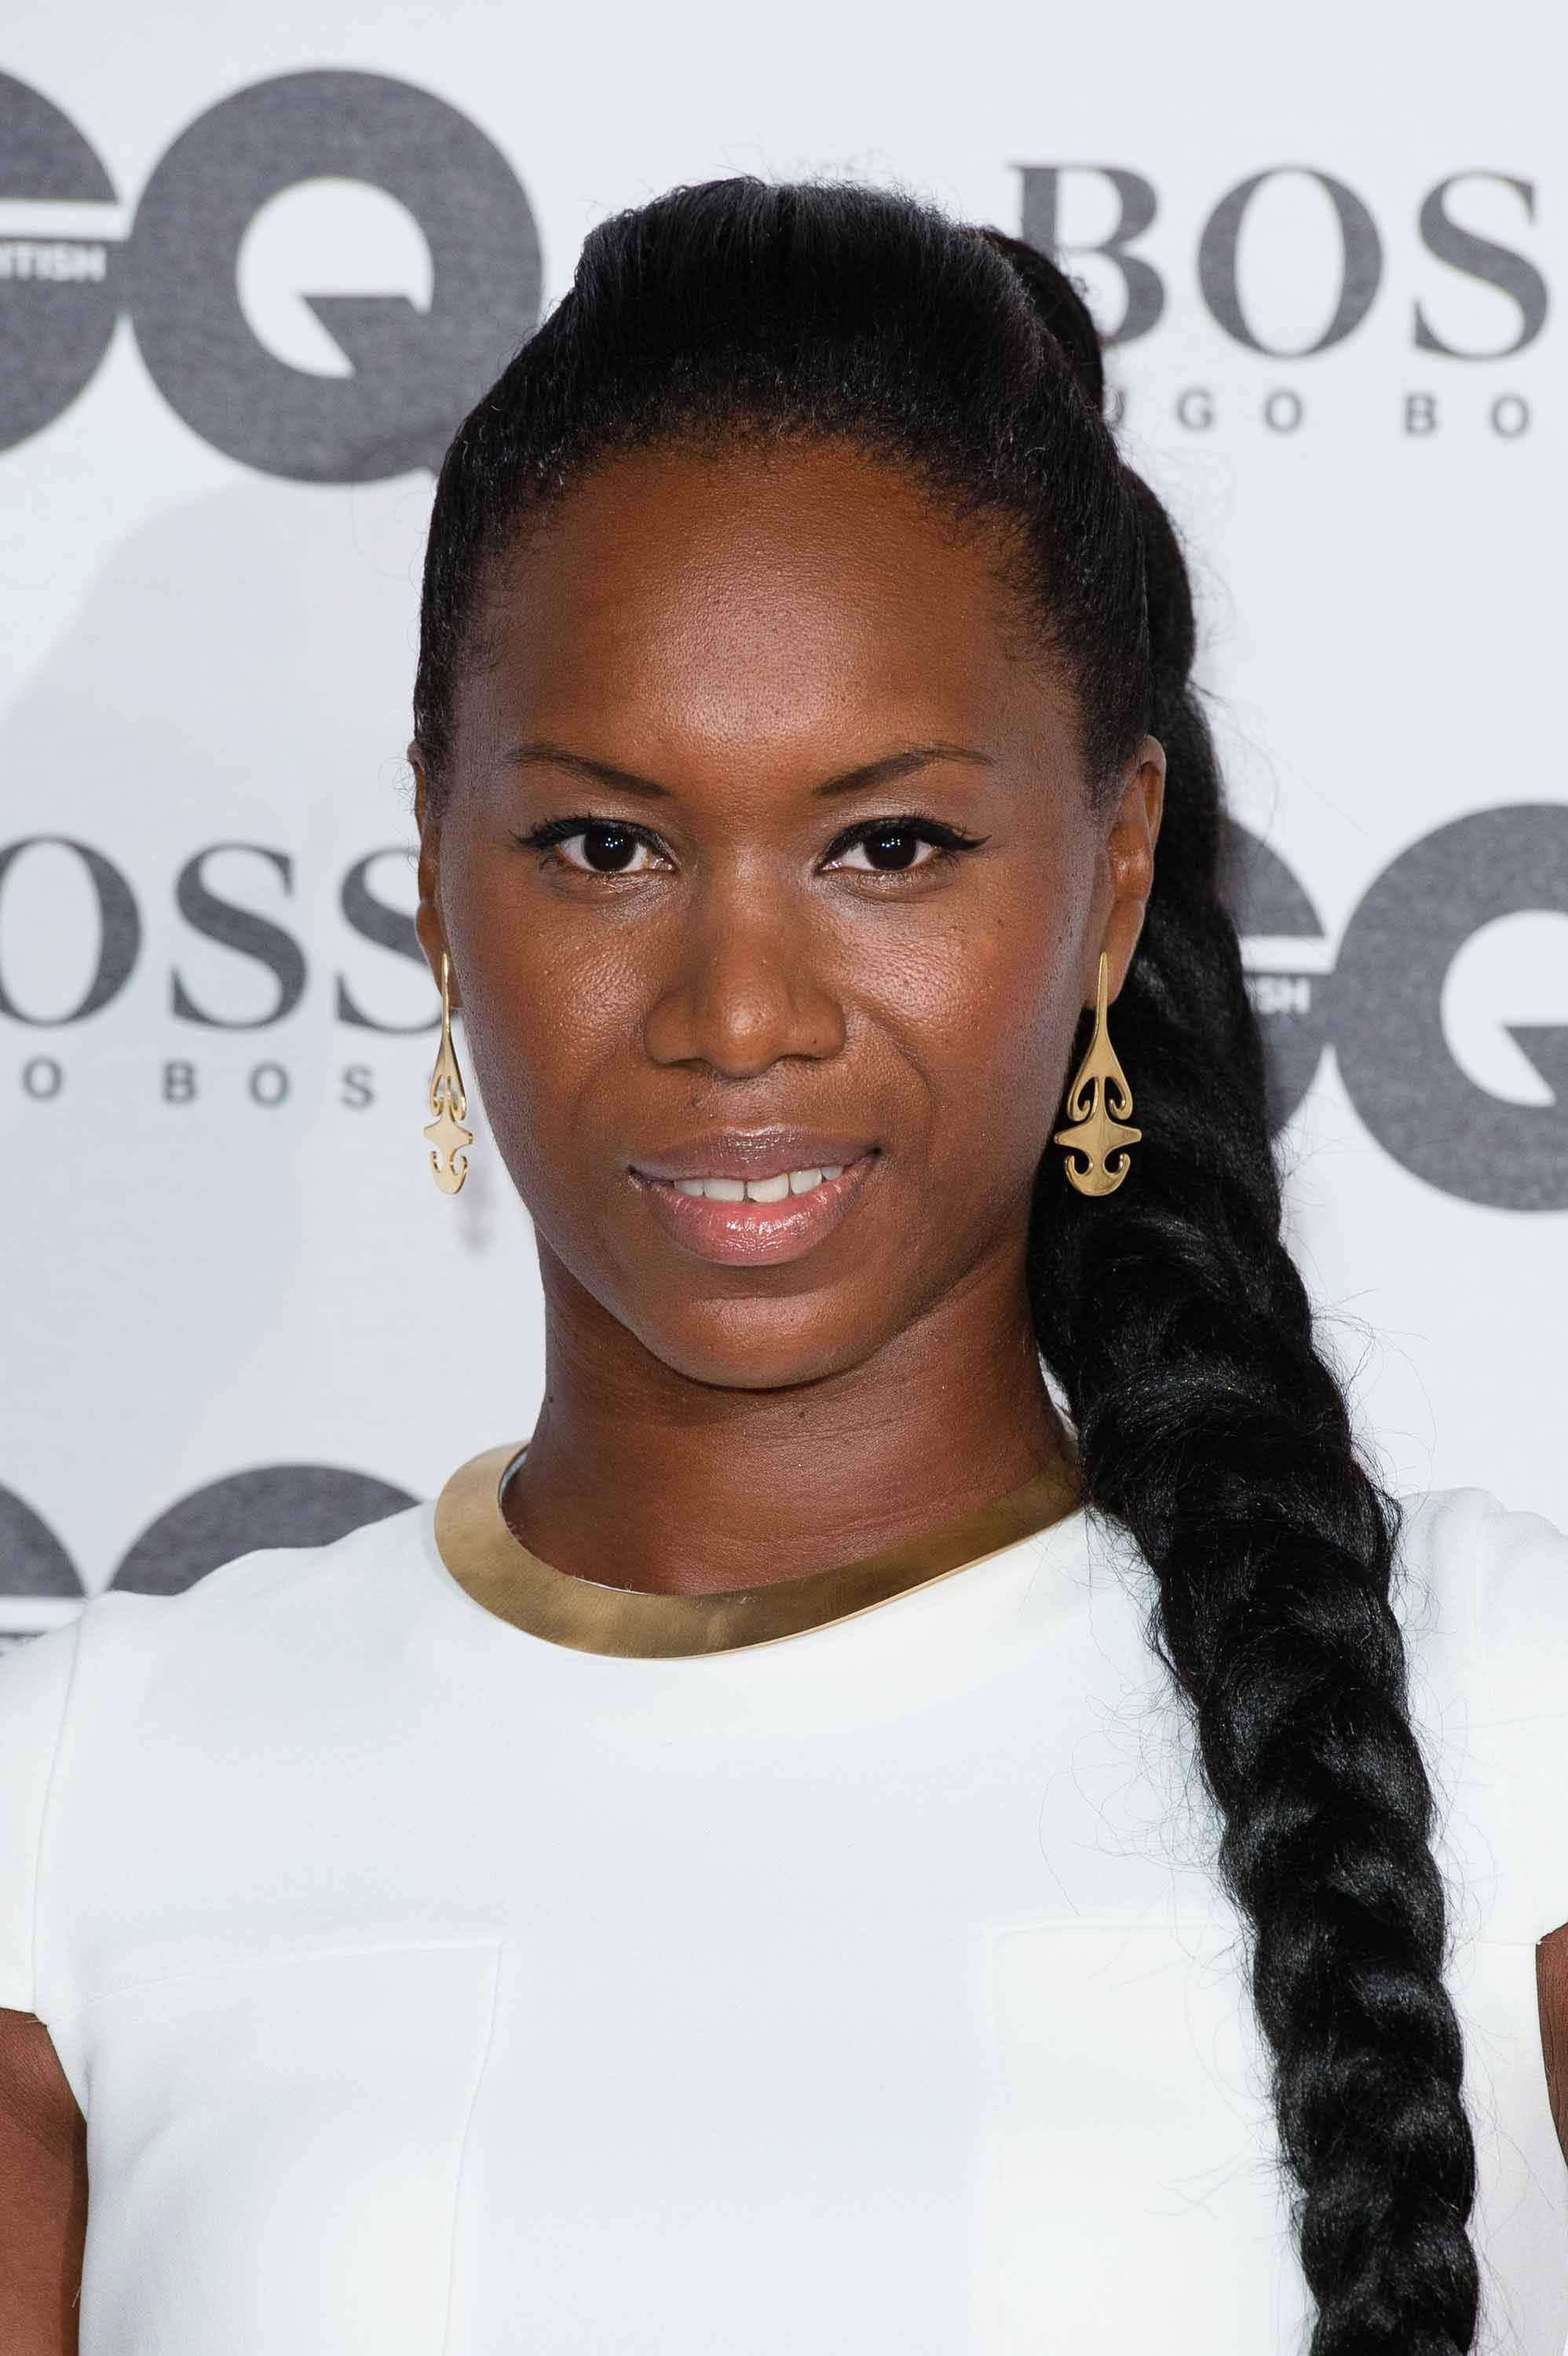 GQ Awards 2016 Aicha McKenzie